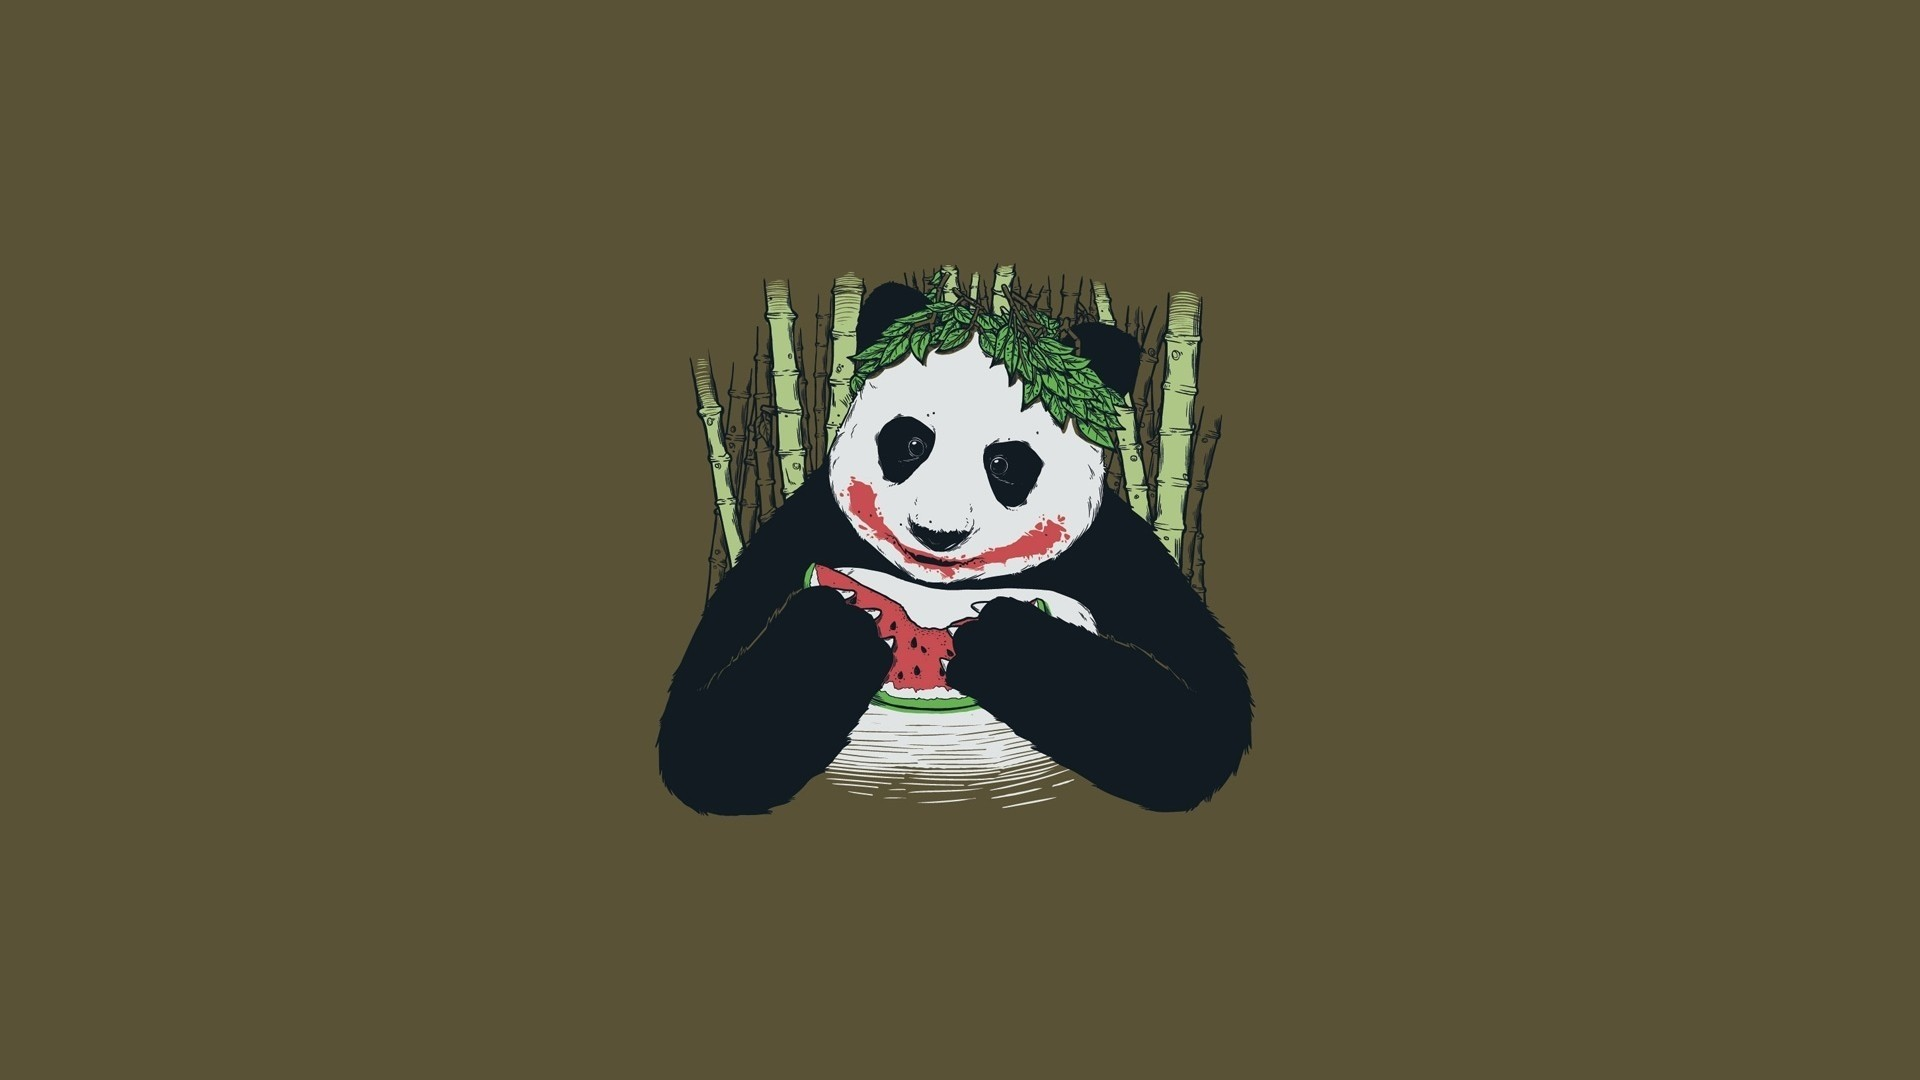 Panda Minimalist desktop wallpaper hd